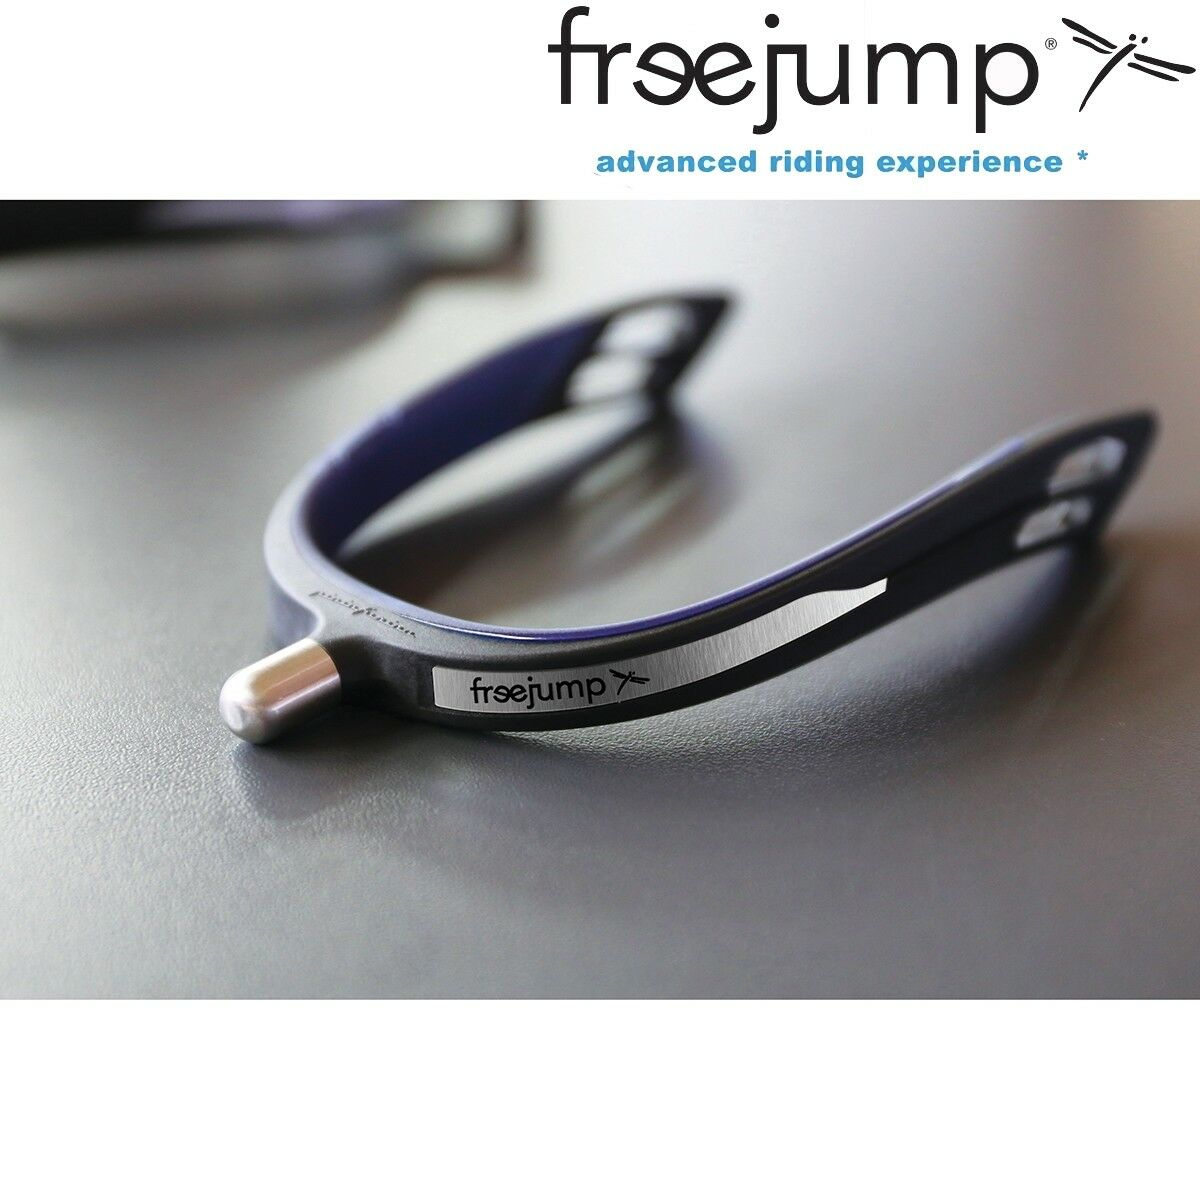 Freejump SPUR'ONE SPUR'ONE Freejump Spurs - Round End feaa75